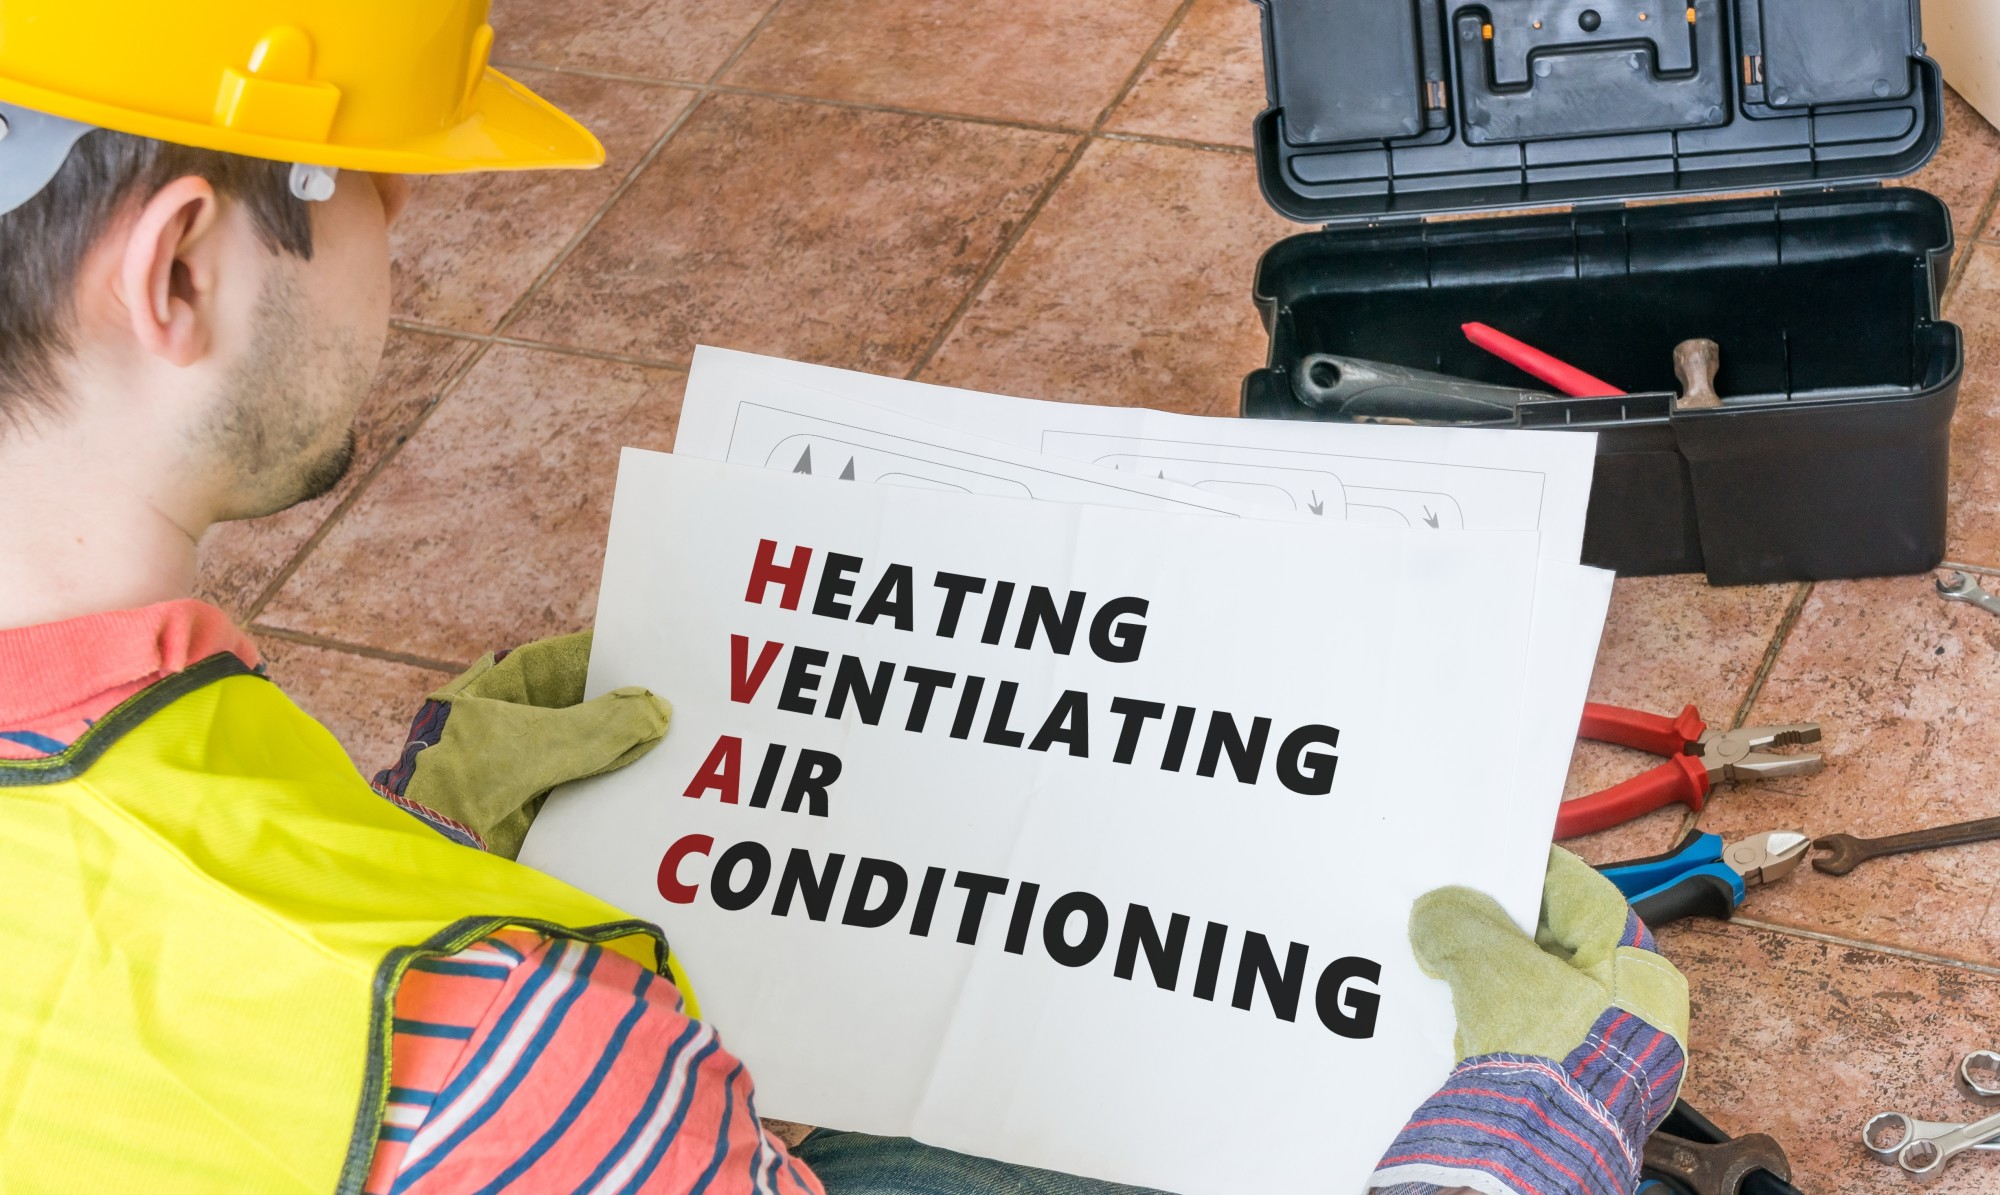 7 Questions to Ask an HVAC Contractor Before Hiring Them